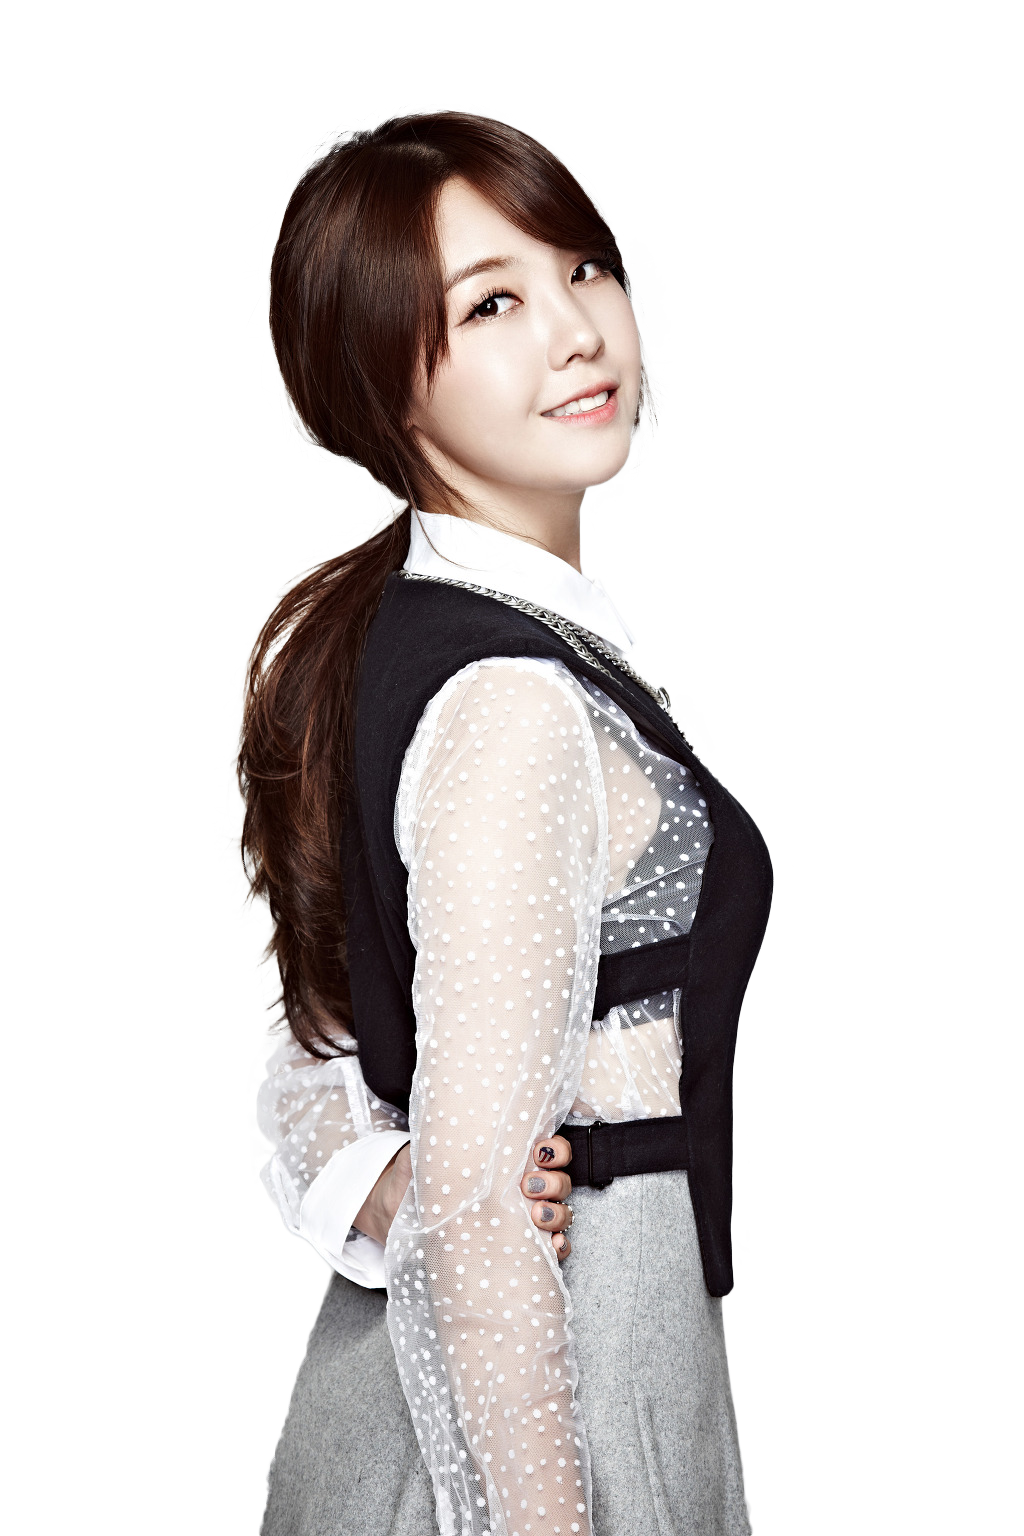 Bang Minah render png by allaixa Bang Minah render png by allaixa